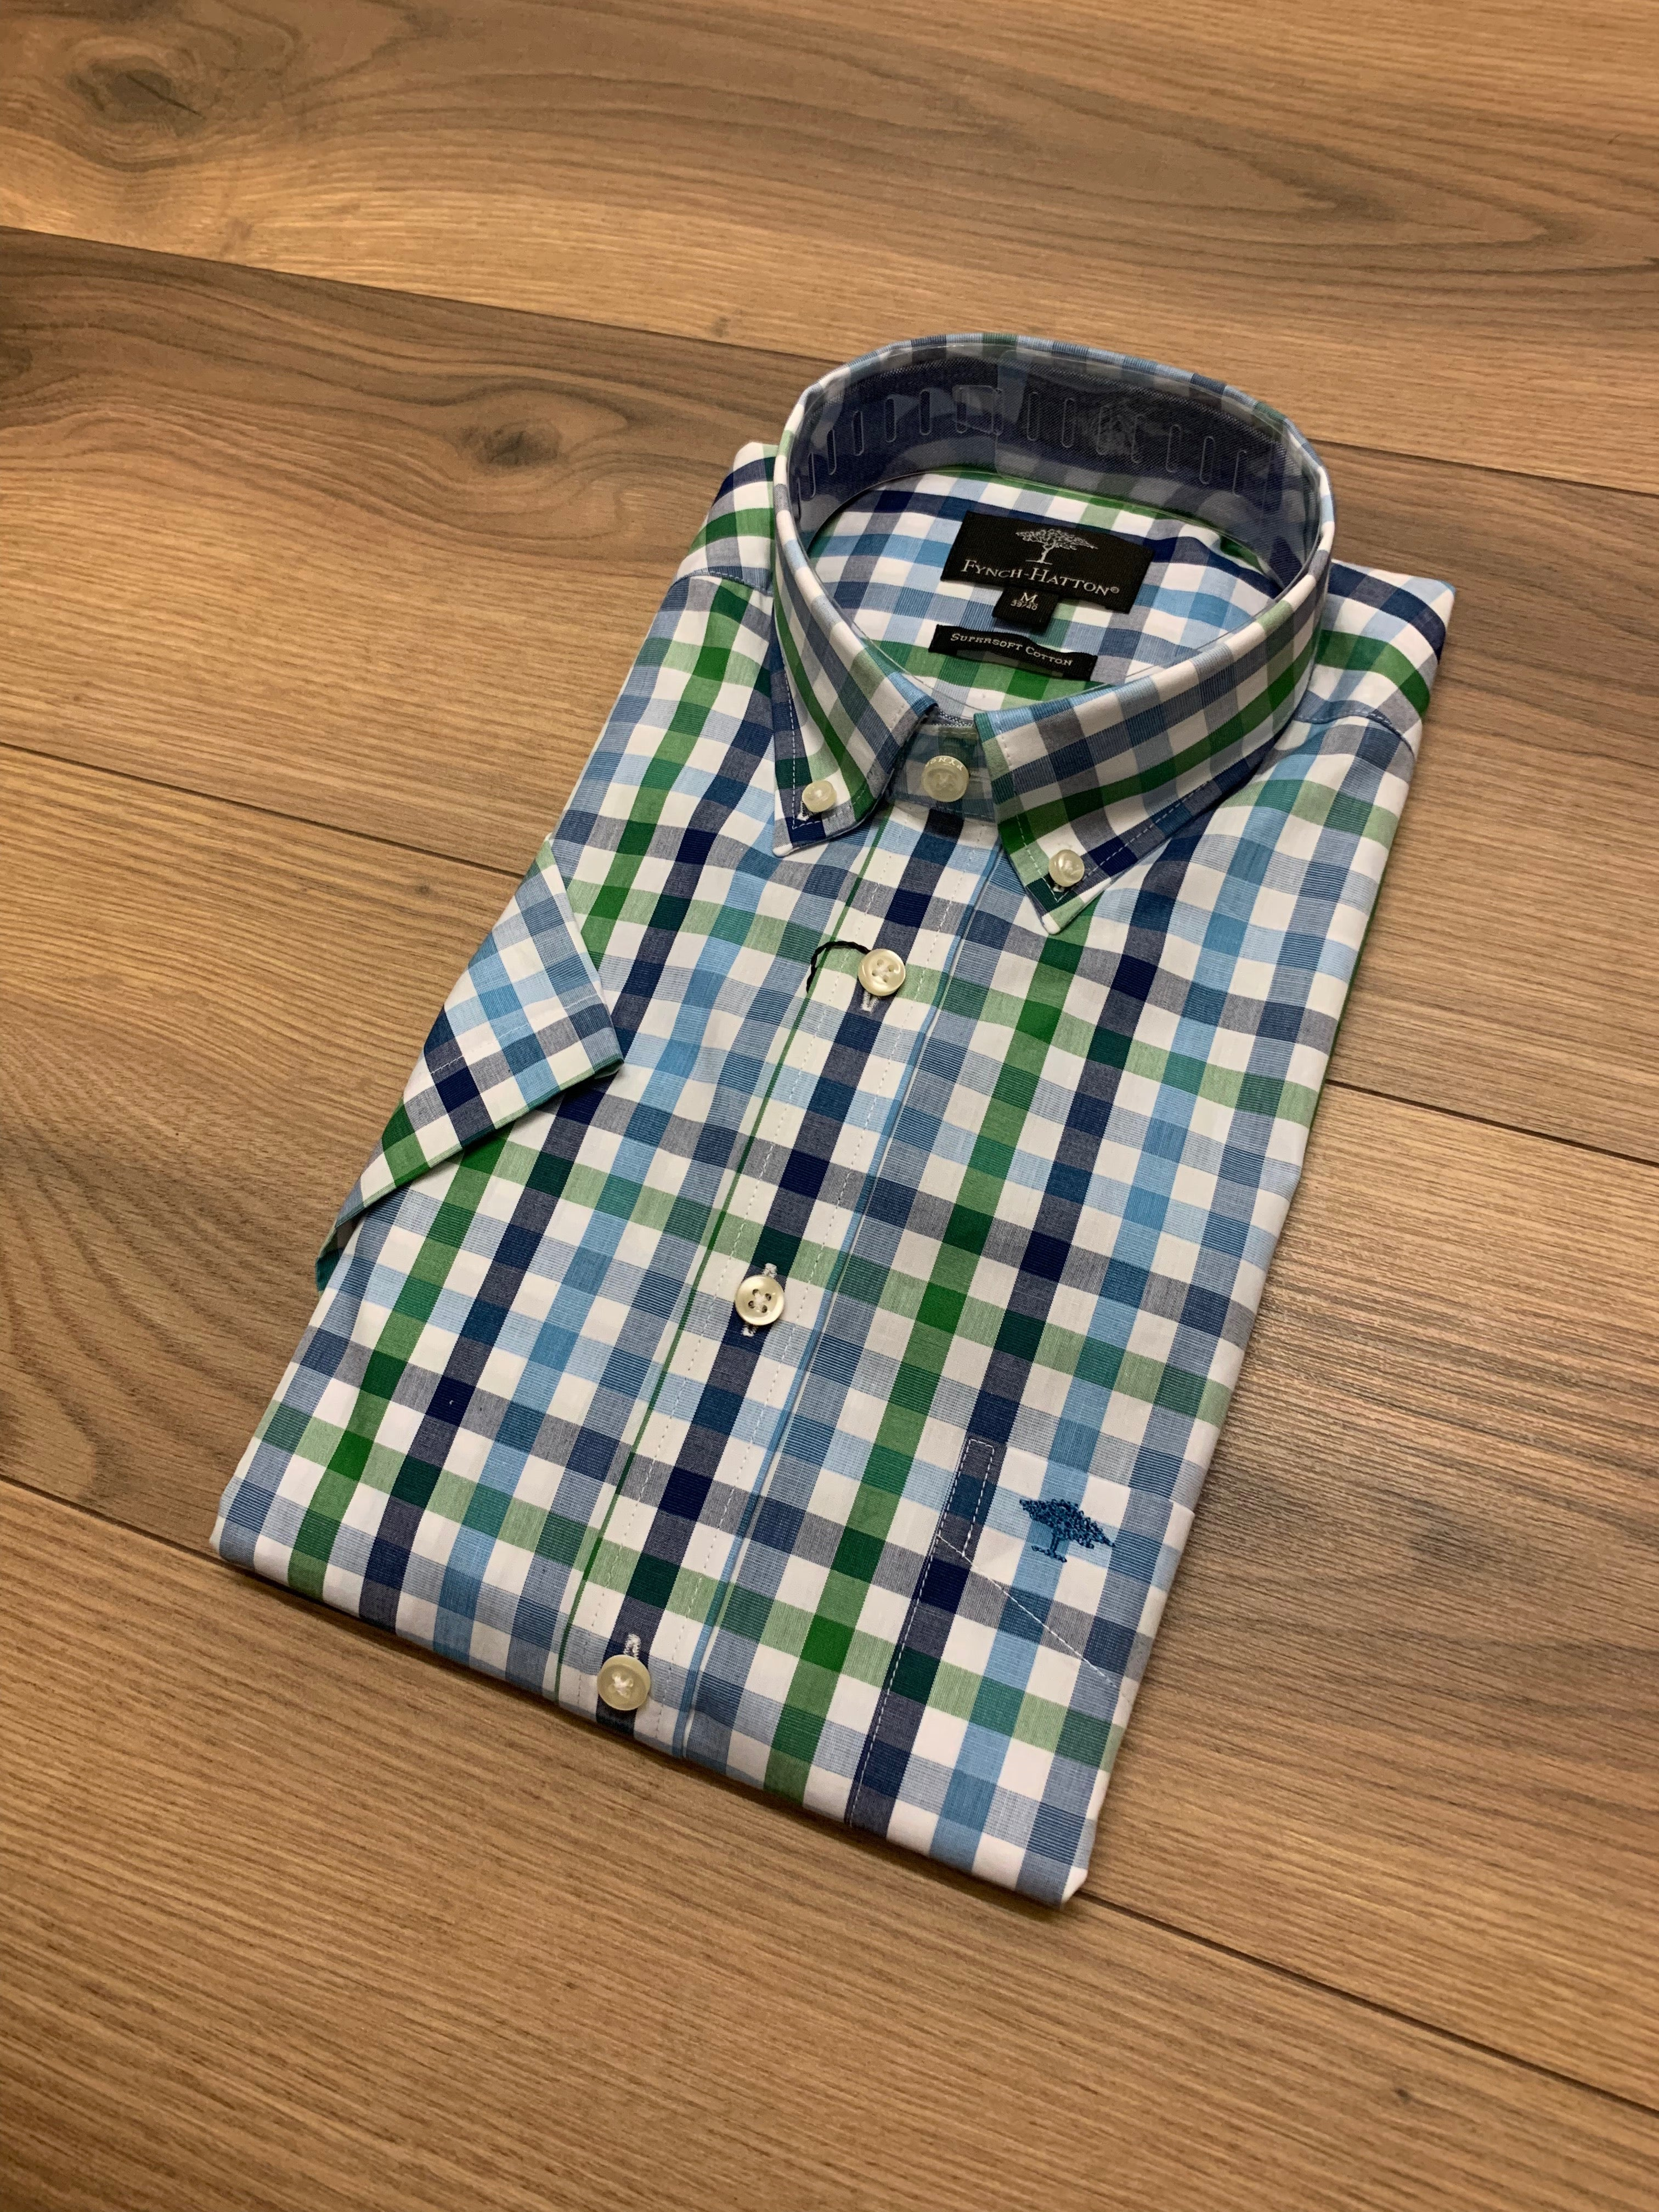 Fynch Hatton 1/2 Sleeve Check Shirt - Pistacchio Blue - jjdonnelly